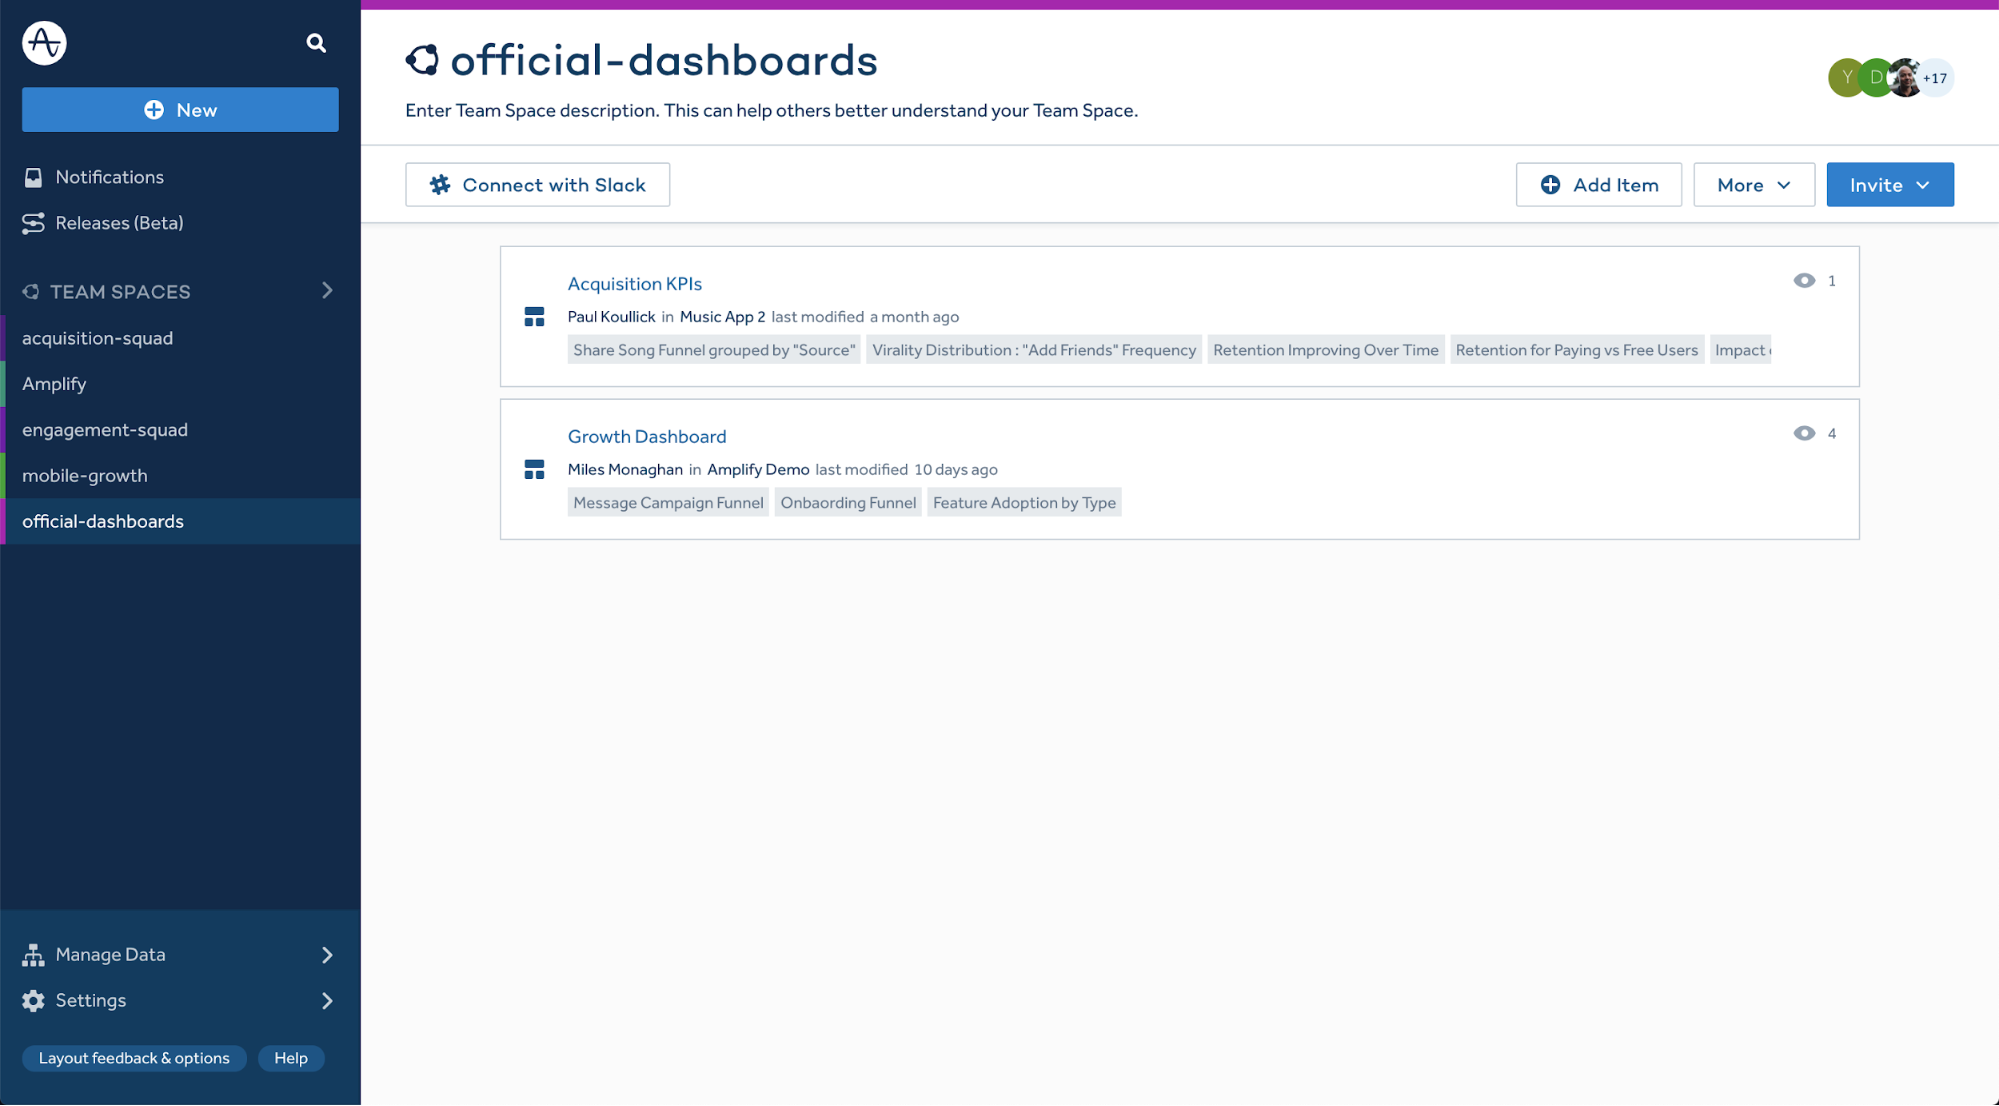 official dashboards